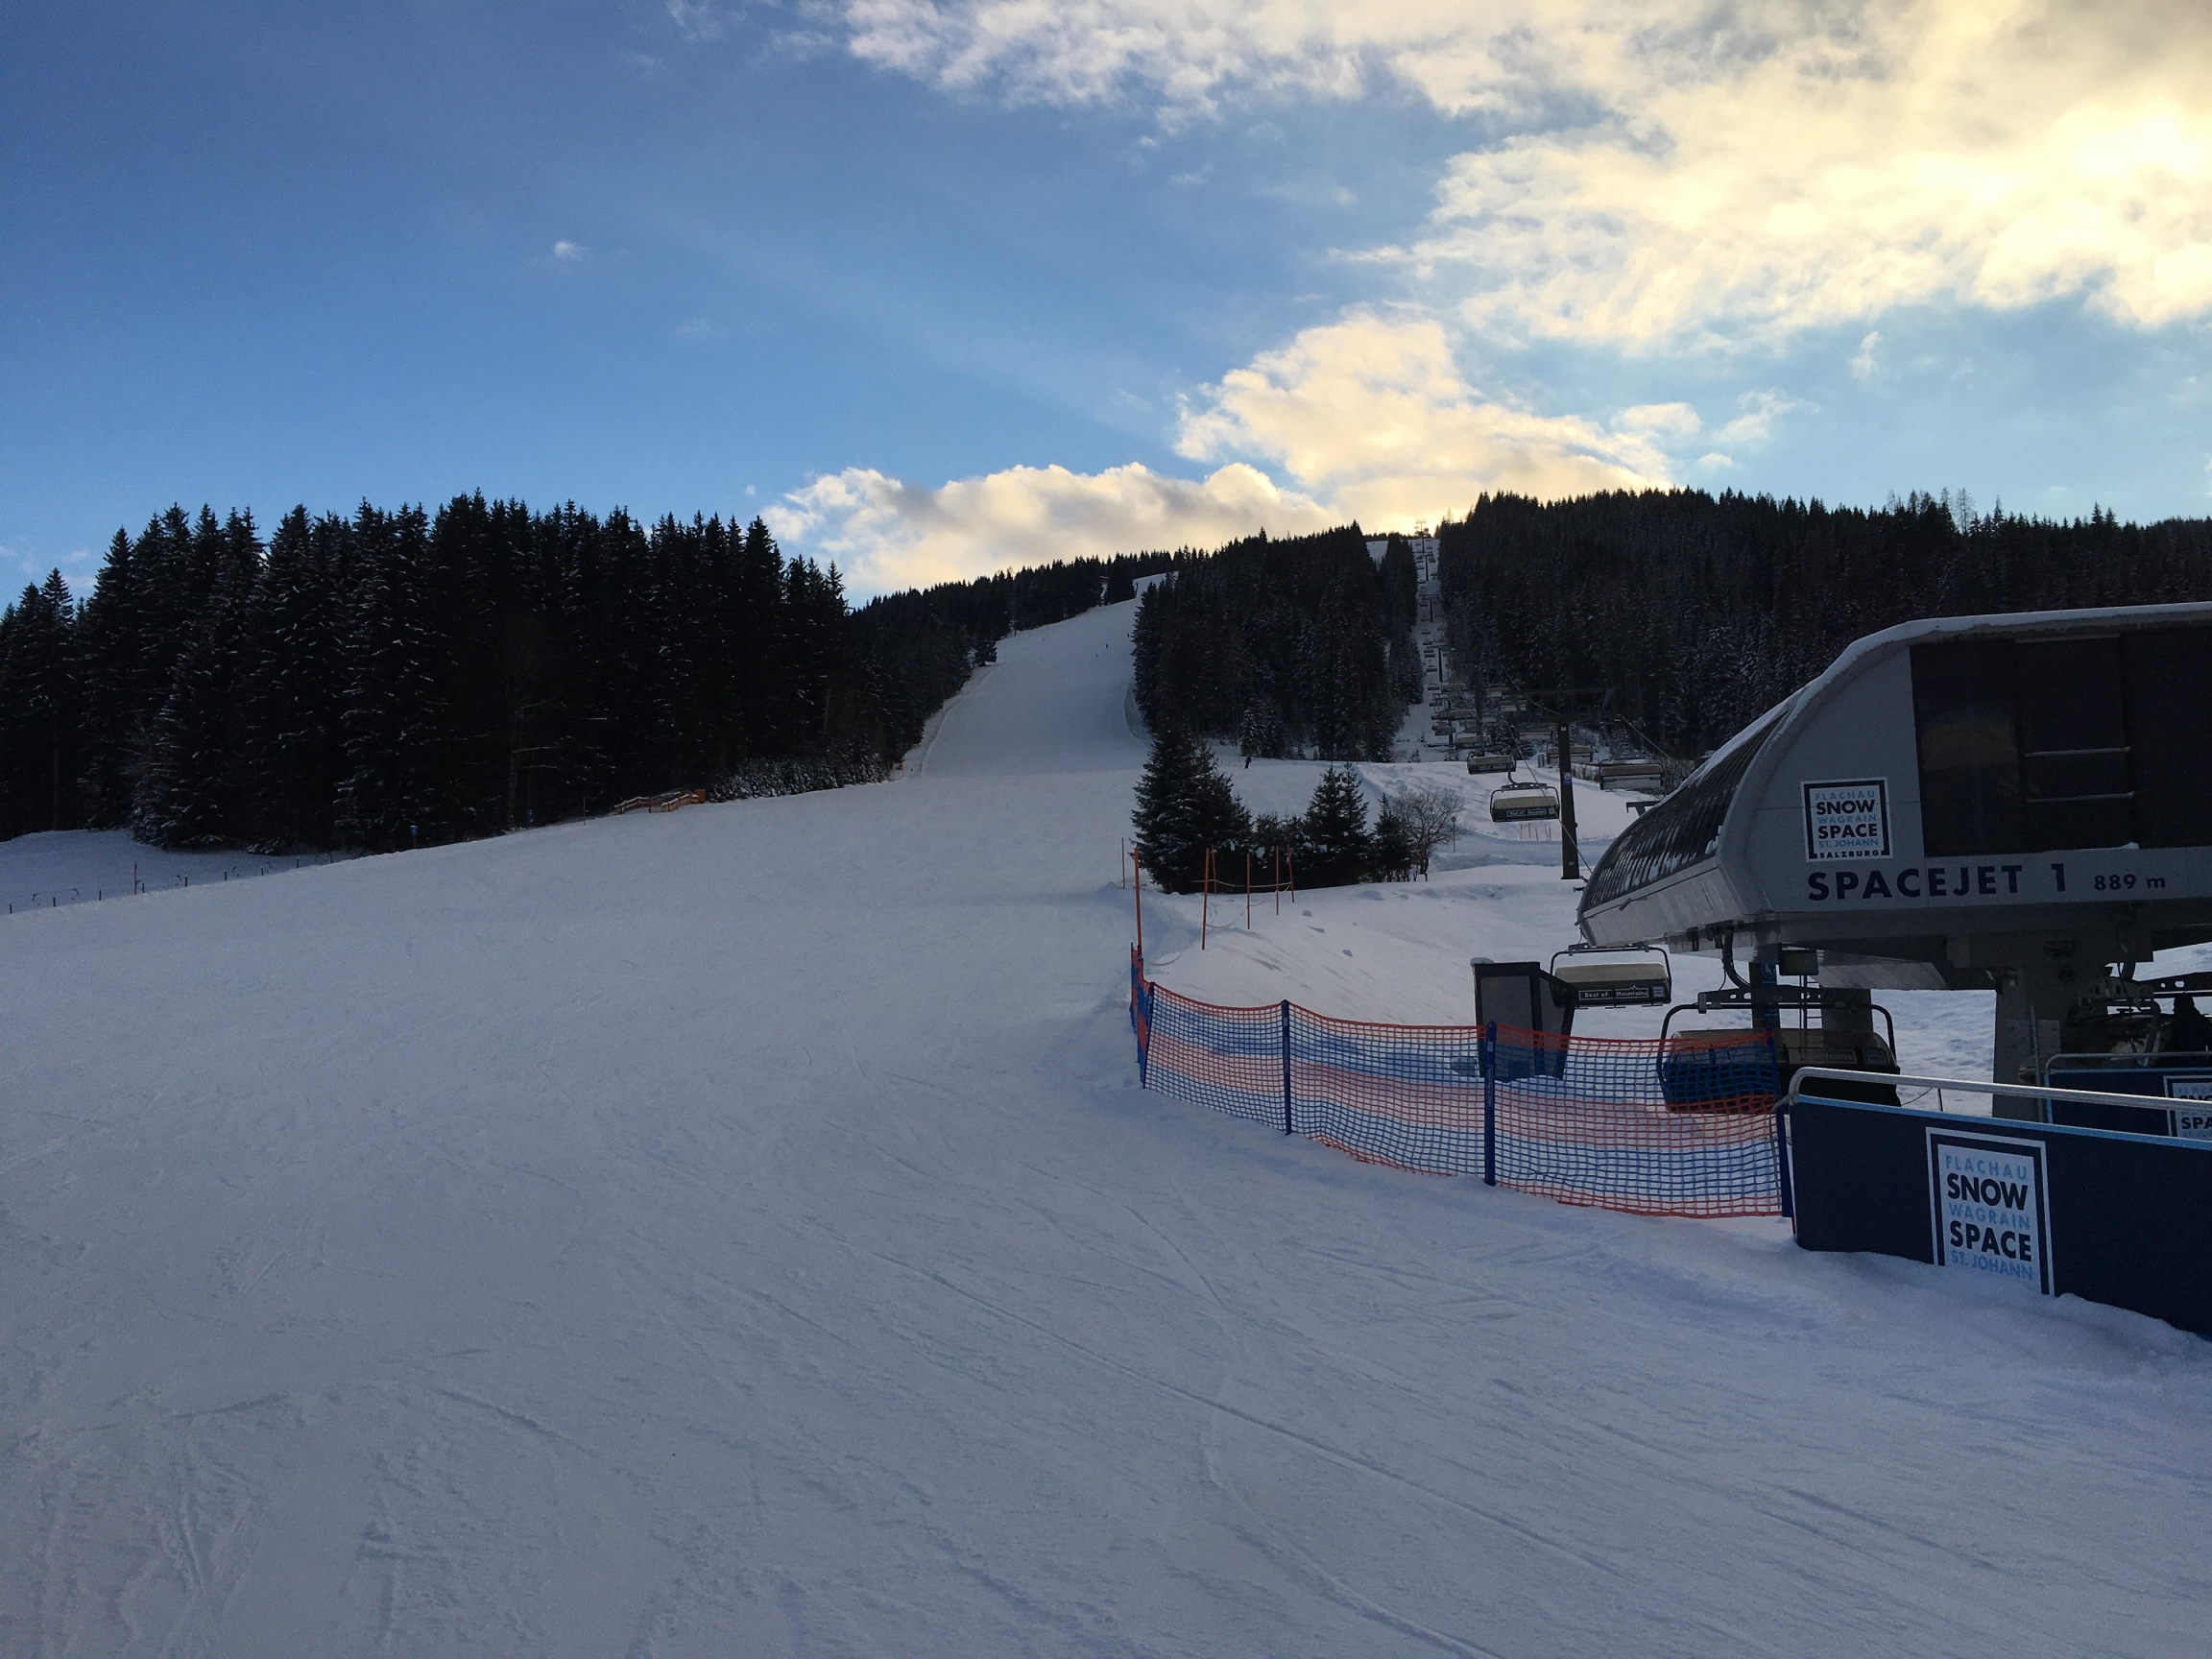 Ski slopes in Austria are technically open, but with hotels and restaurants closed, only locals can make day trips to many resorts in Austria's western Alps.